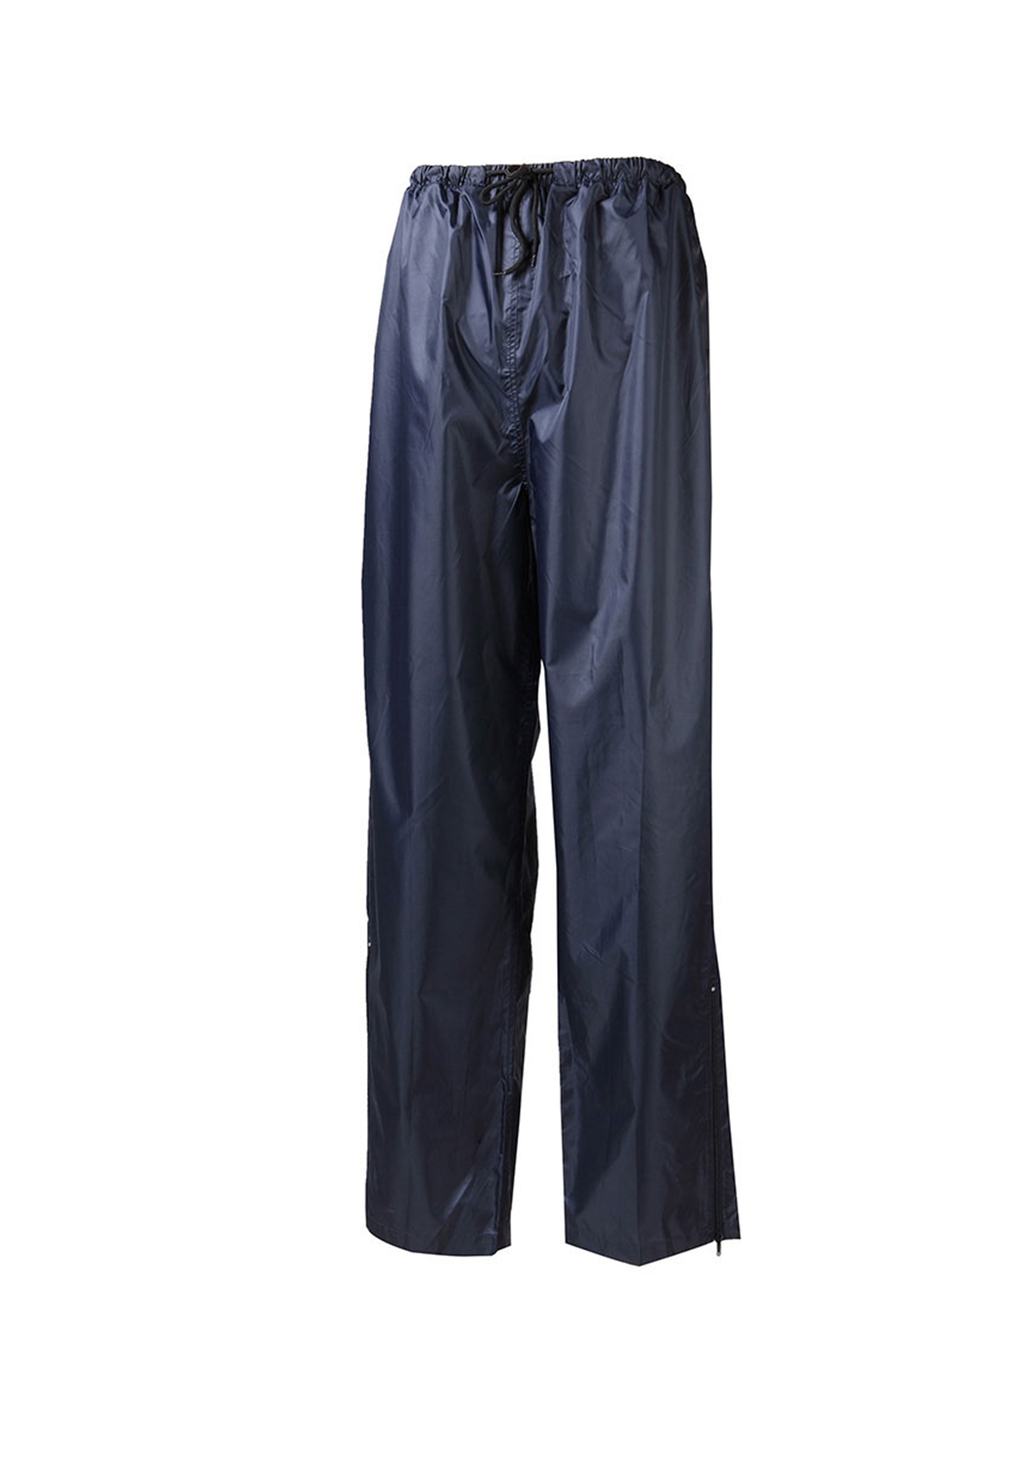 RAINBIRD GOSTOW RAIN PANTS JUNIOR NAVY <br>K8003-7 NAVY